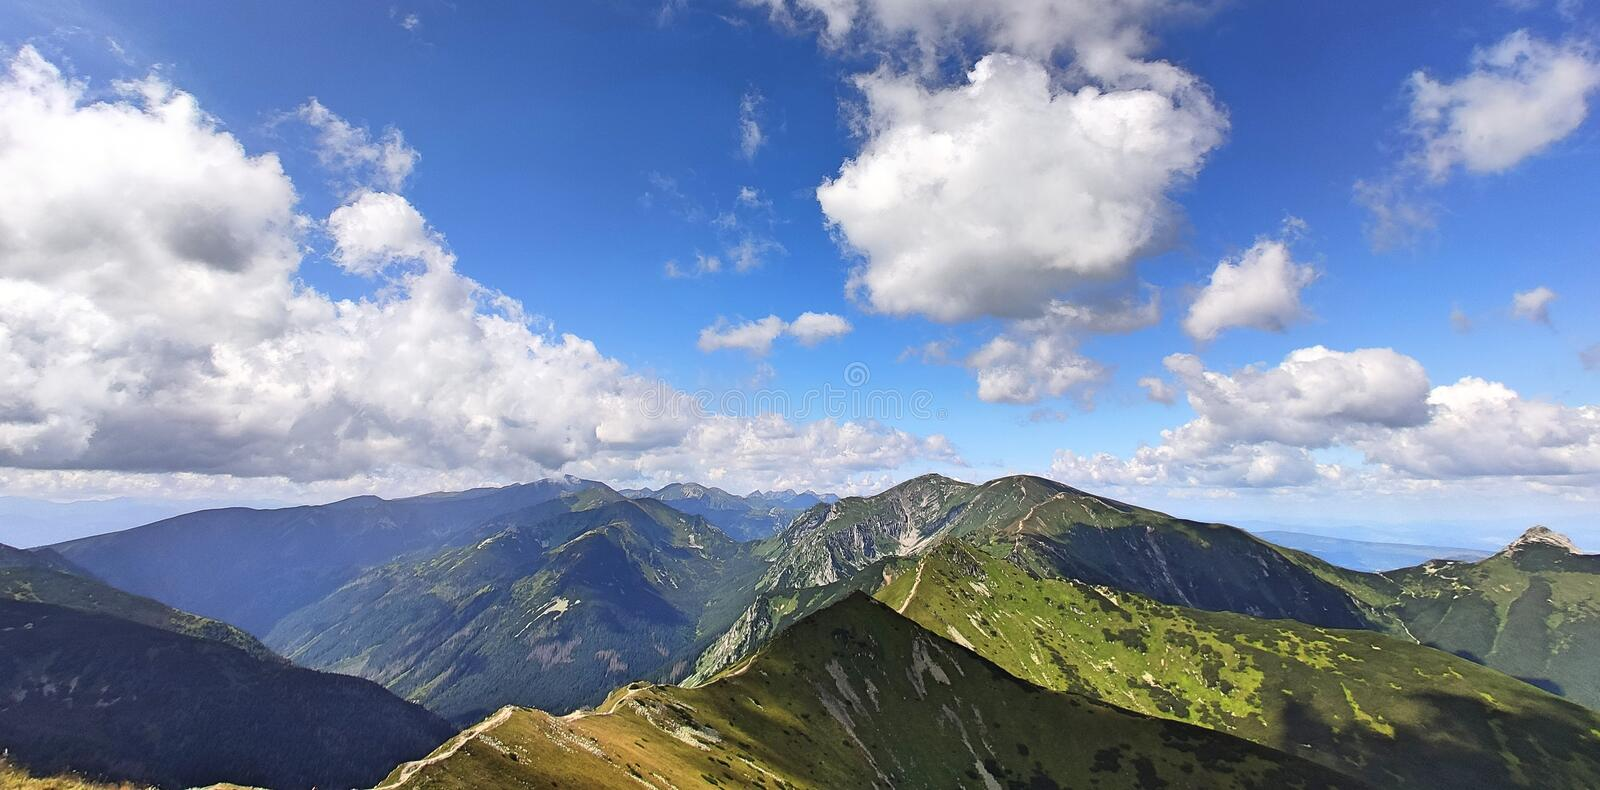 Tatra mountains. View from the top of Kasprowy Wierch mount. Tatry, Poland royalty free stock image